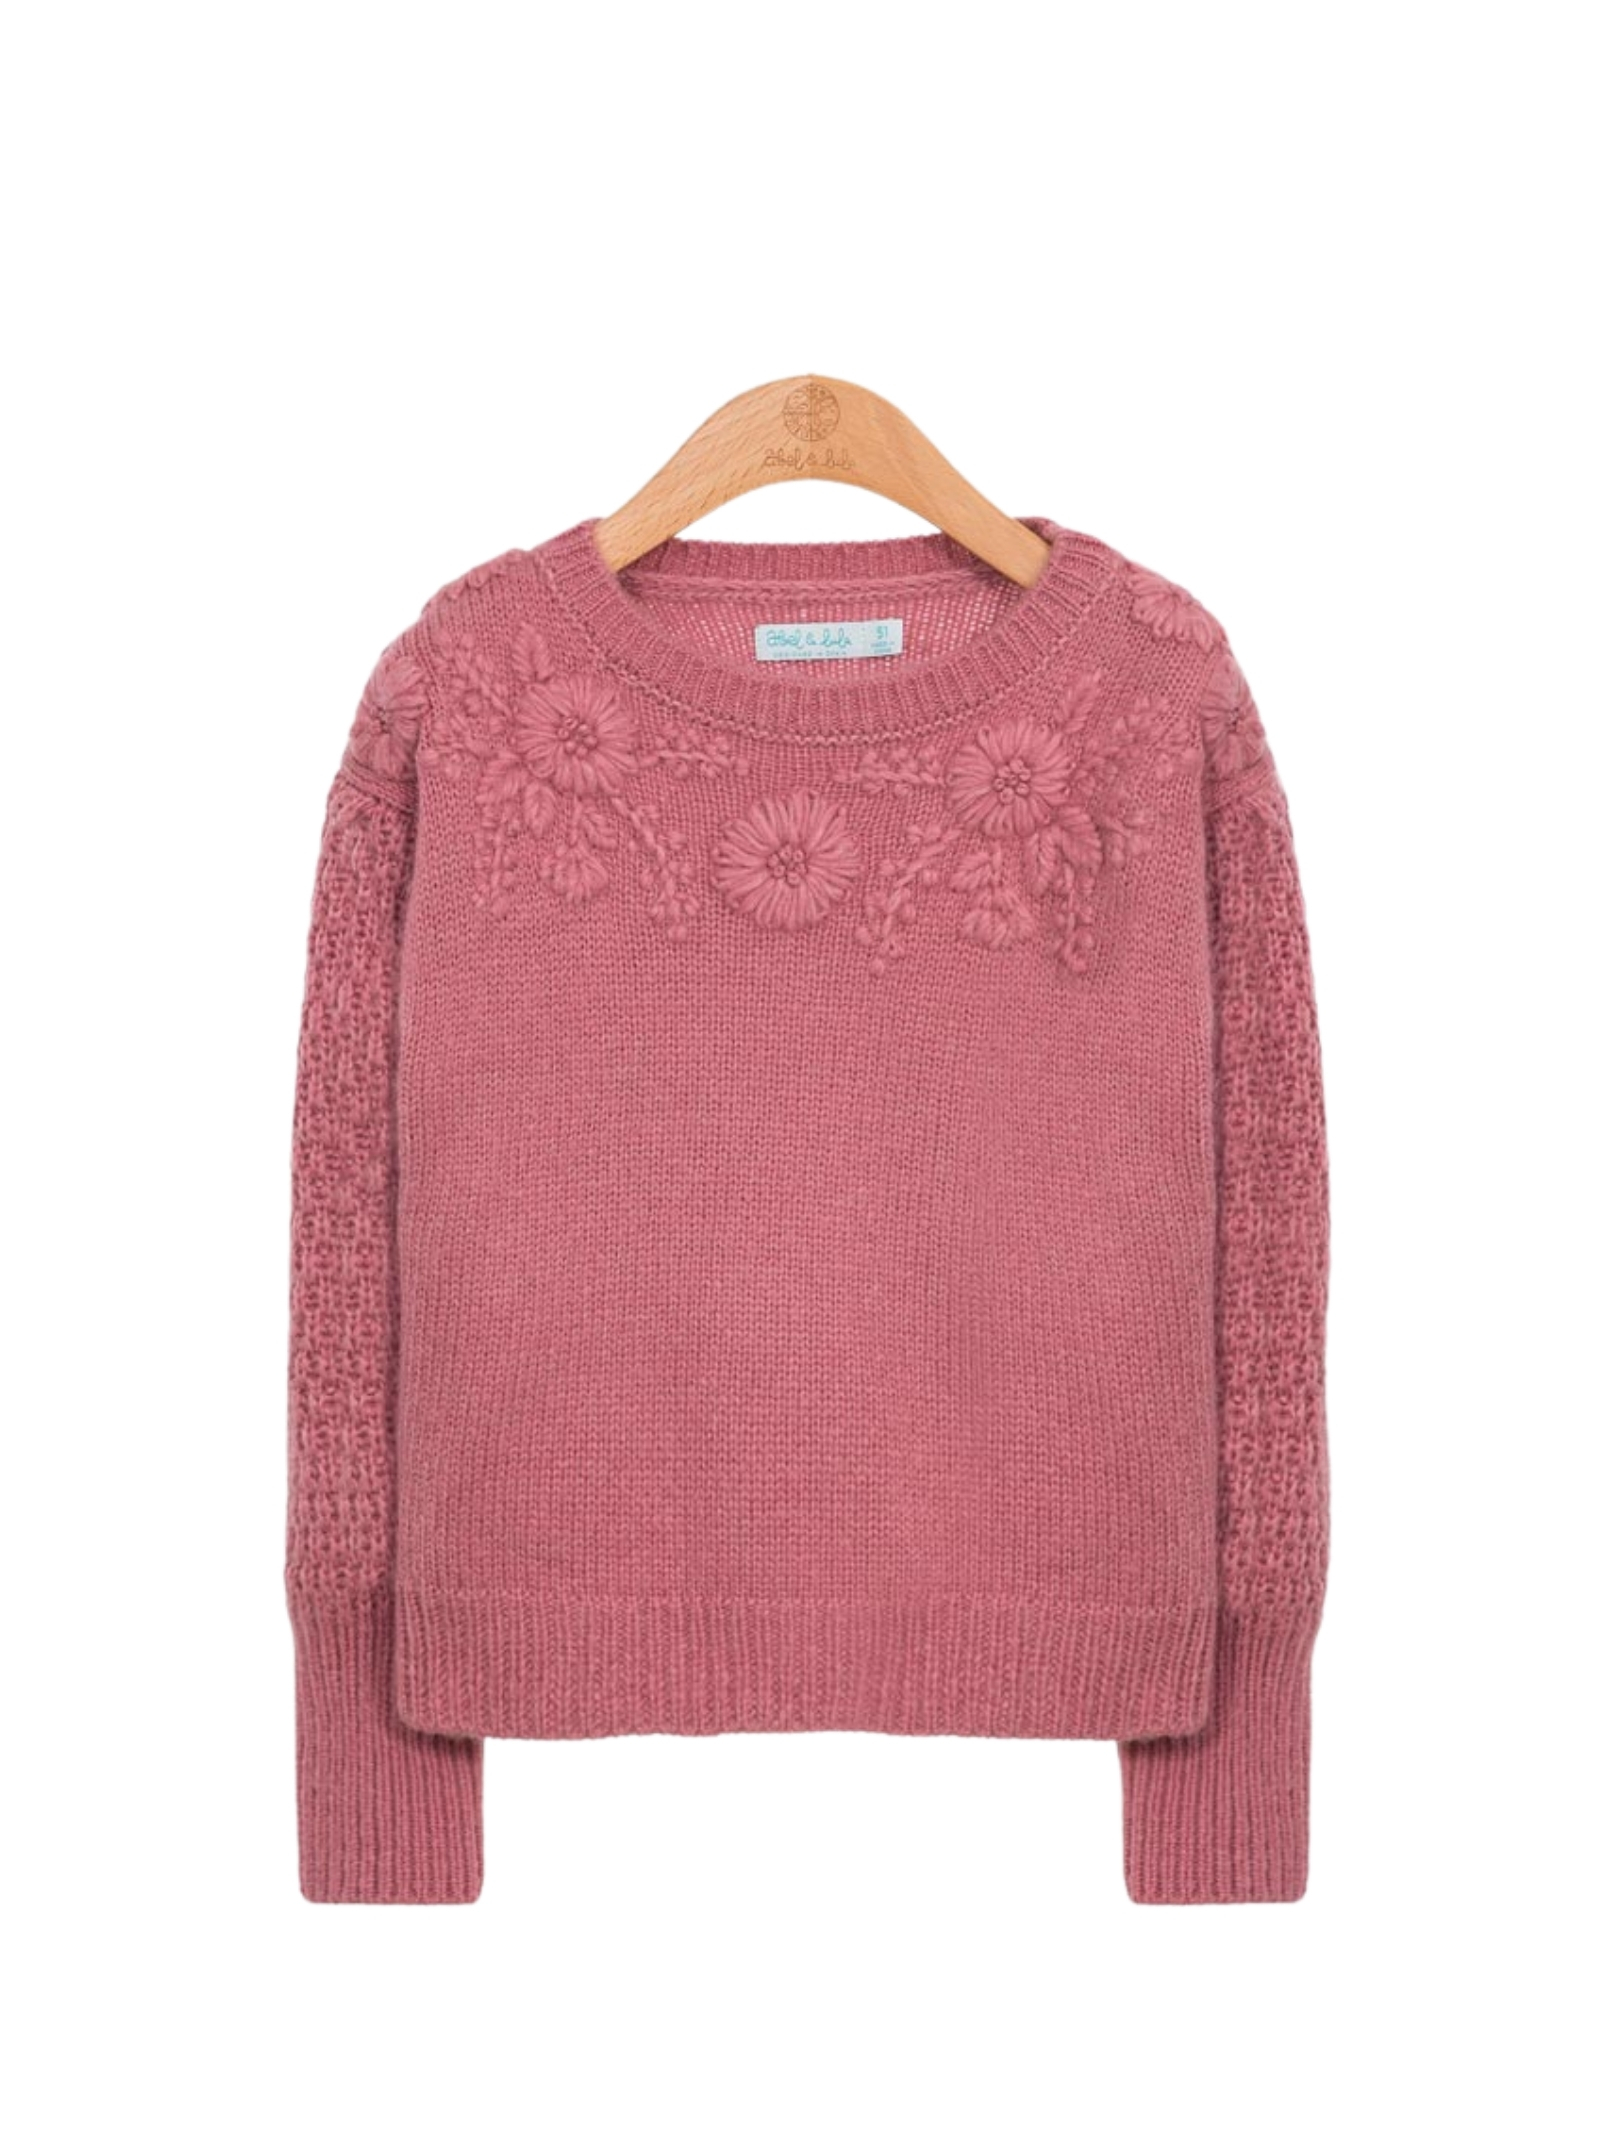 Floral Embroidery Sweater ABEL&LULA | Sweaters | 5834071